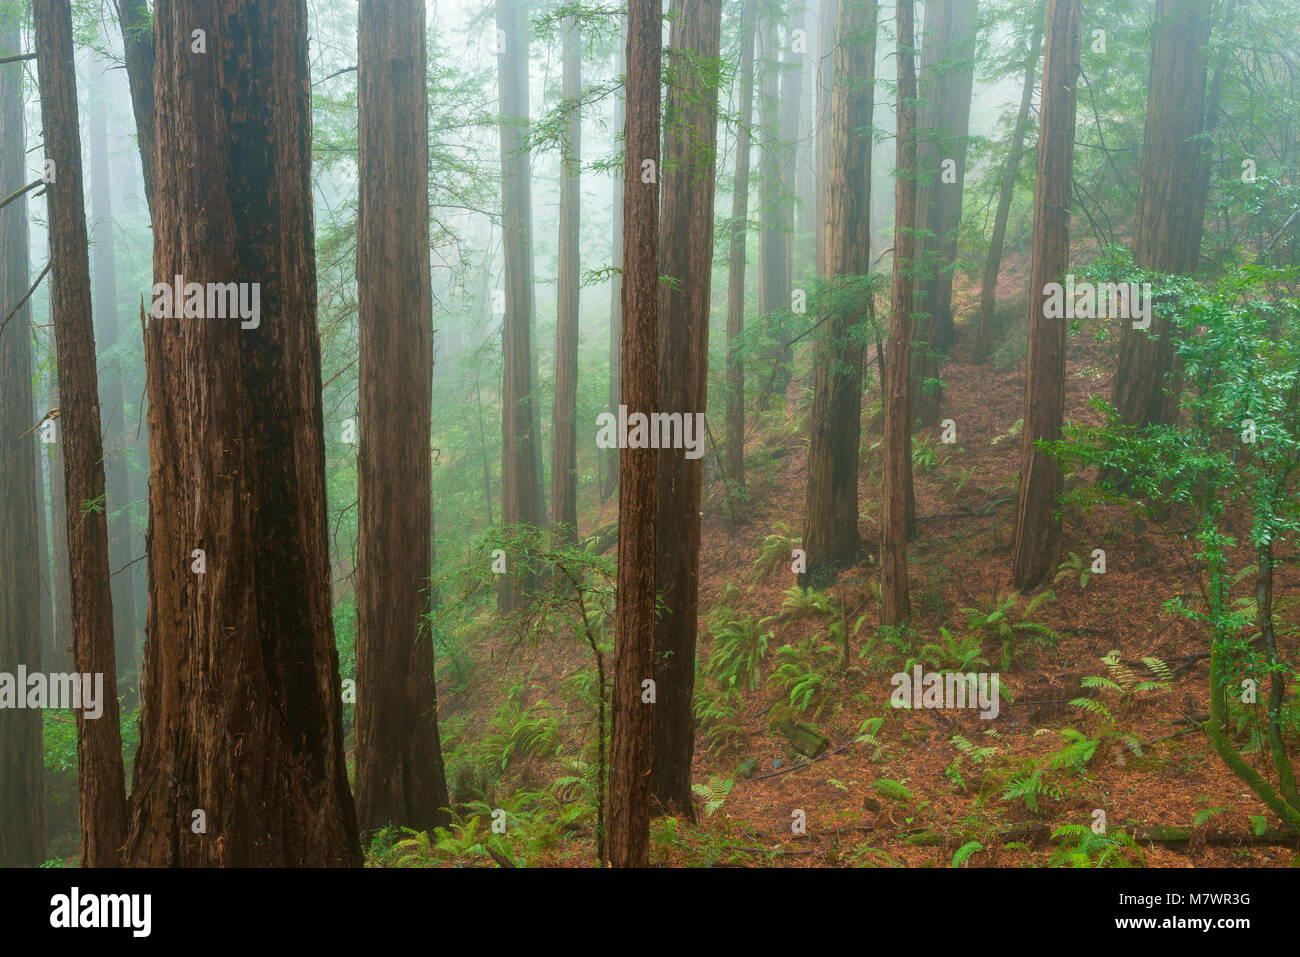 Coastal Fog, Redwoods, Sequoia sempervirens, Muir Woods National Monument, Marin County, California - Stock Image